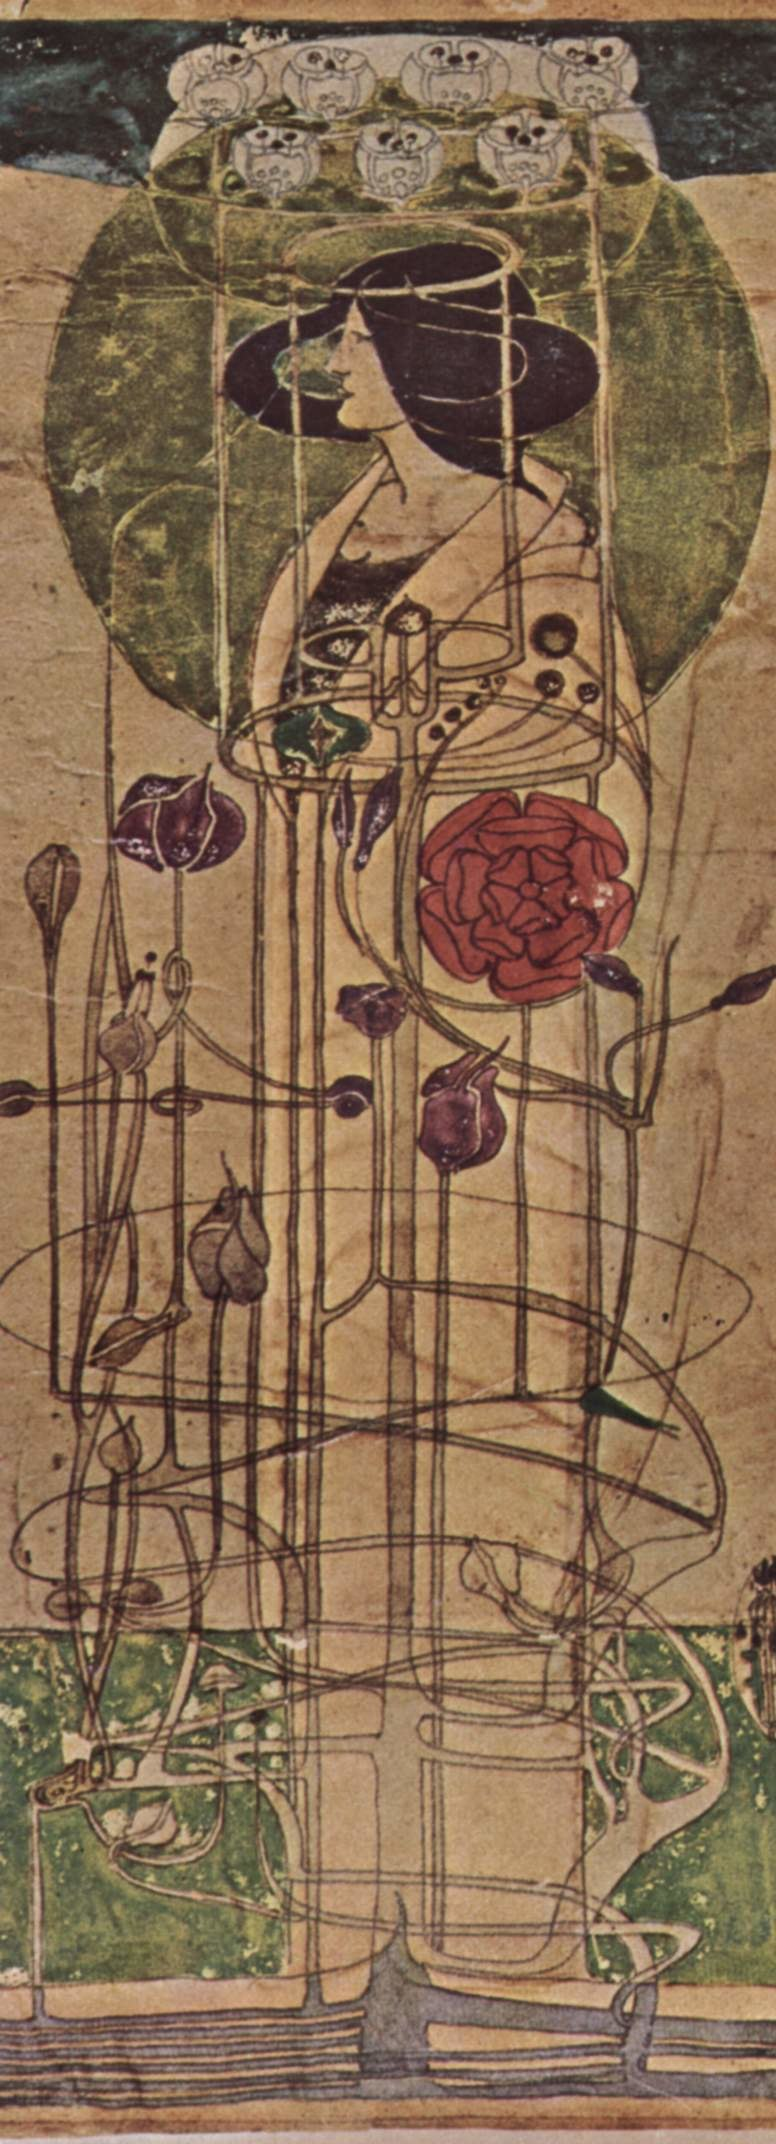 Charles Rennie Mackintosh 001